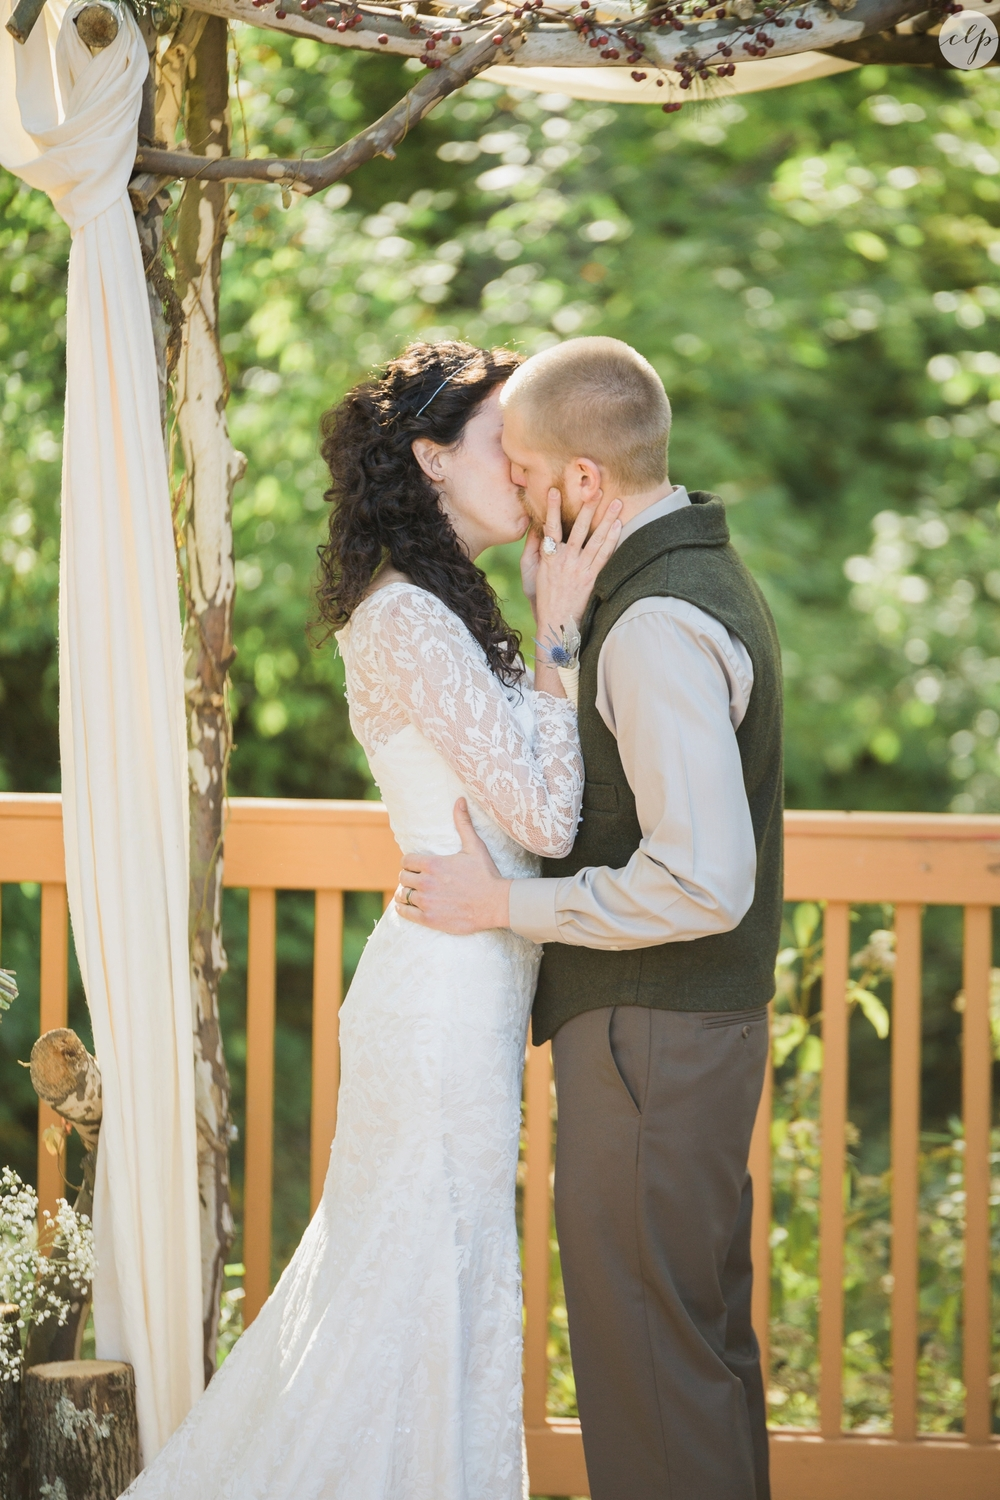 Outdoor-Wedding-in-the-Woods-Photography_4256.jpg